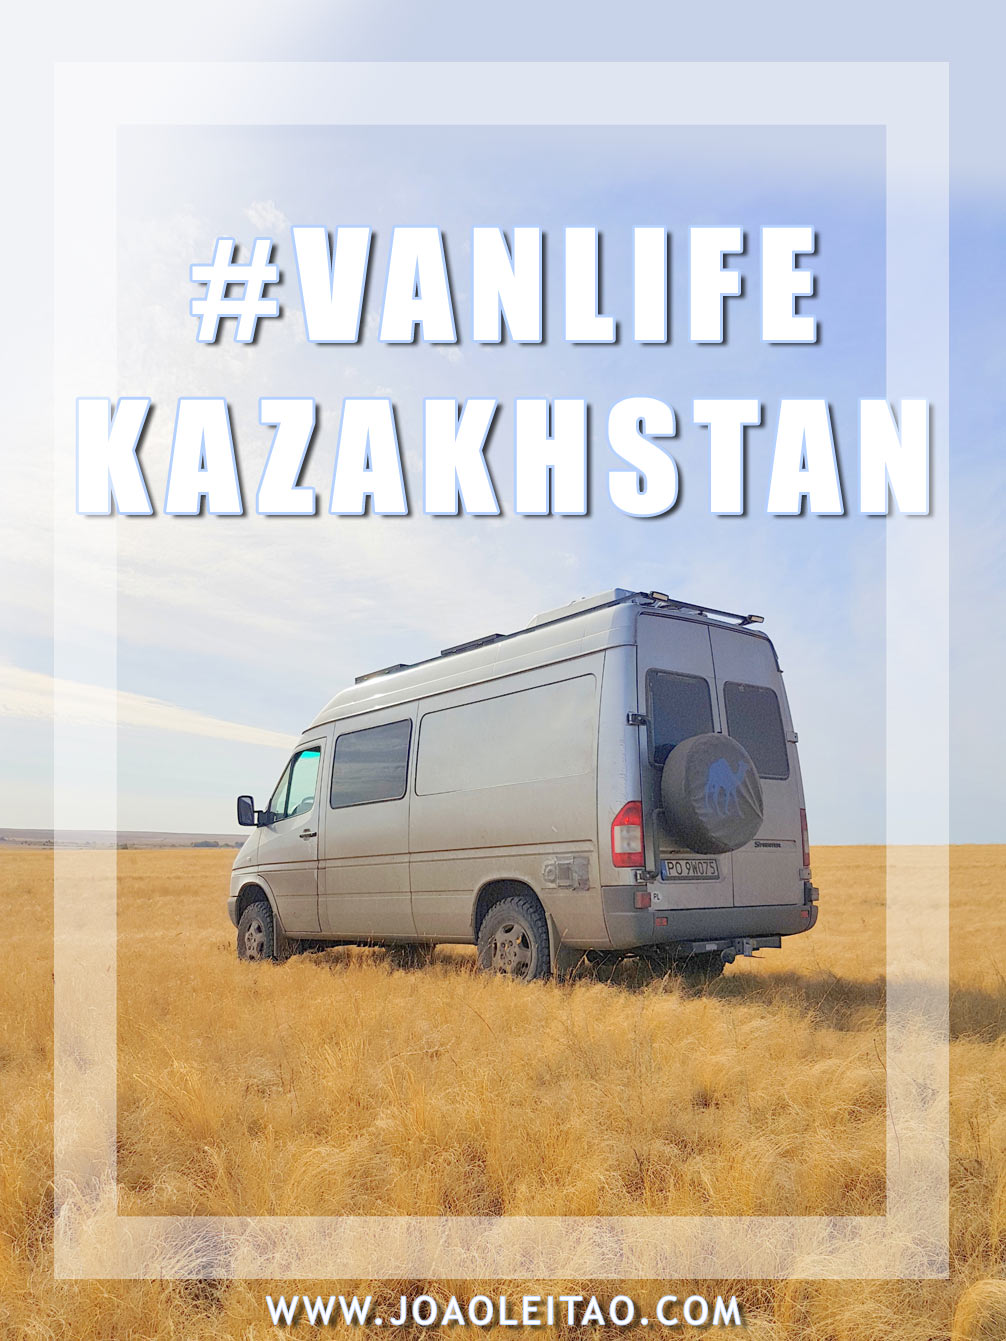 One month road trip in Kazakhstan with a 4X4 Camper Van